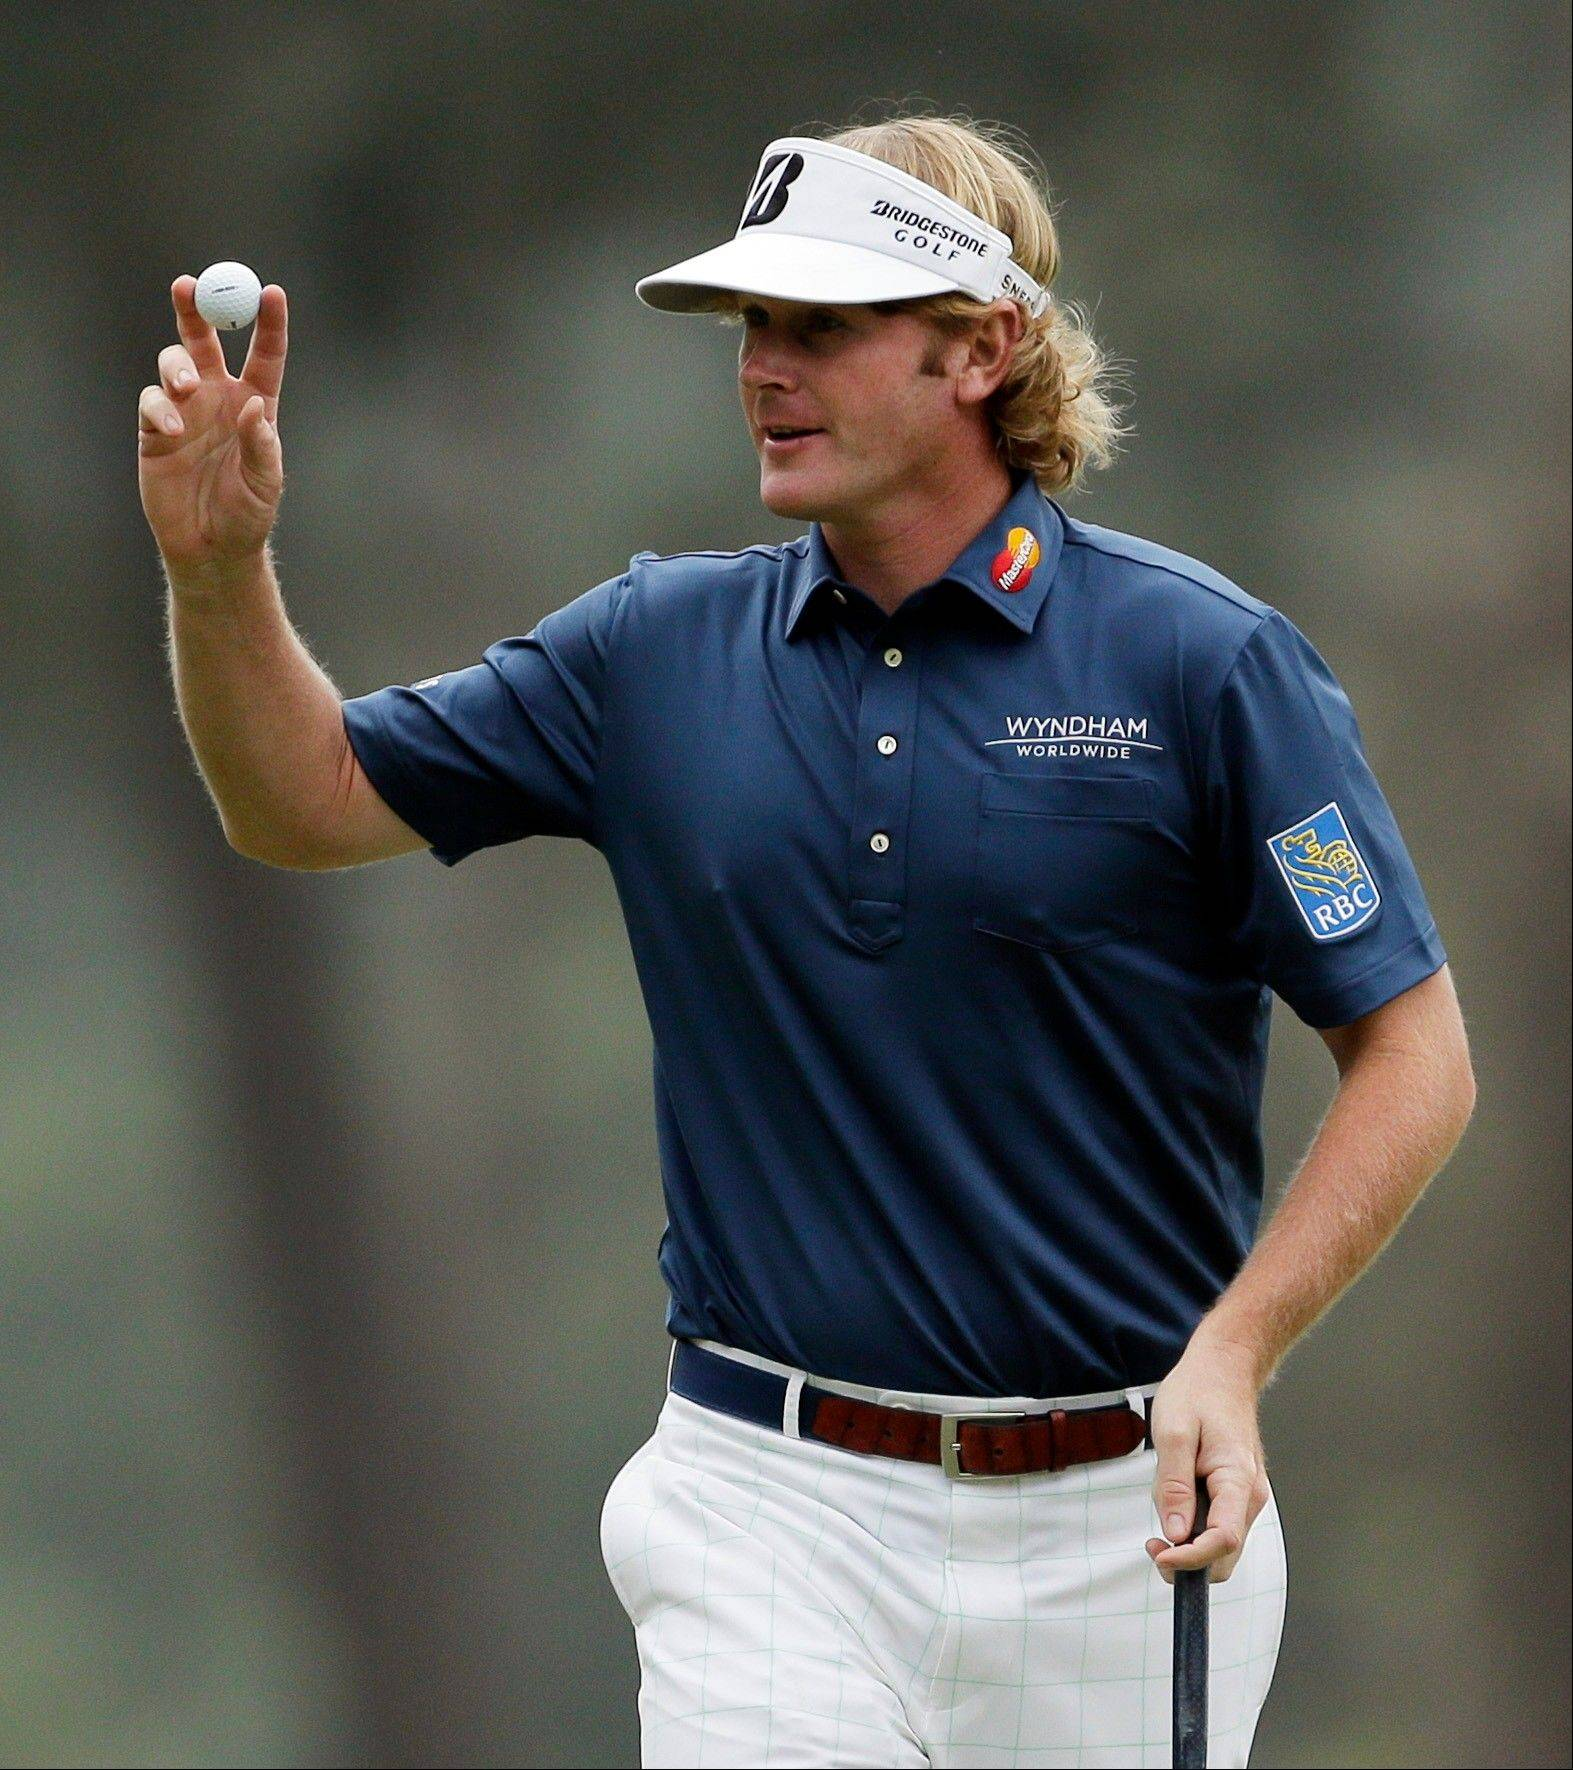 Brandt Snedeker, here celebrating a birdie putt on the third hole at The Masters on Thursday, finished the day with a 2-under 70.